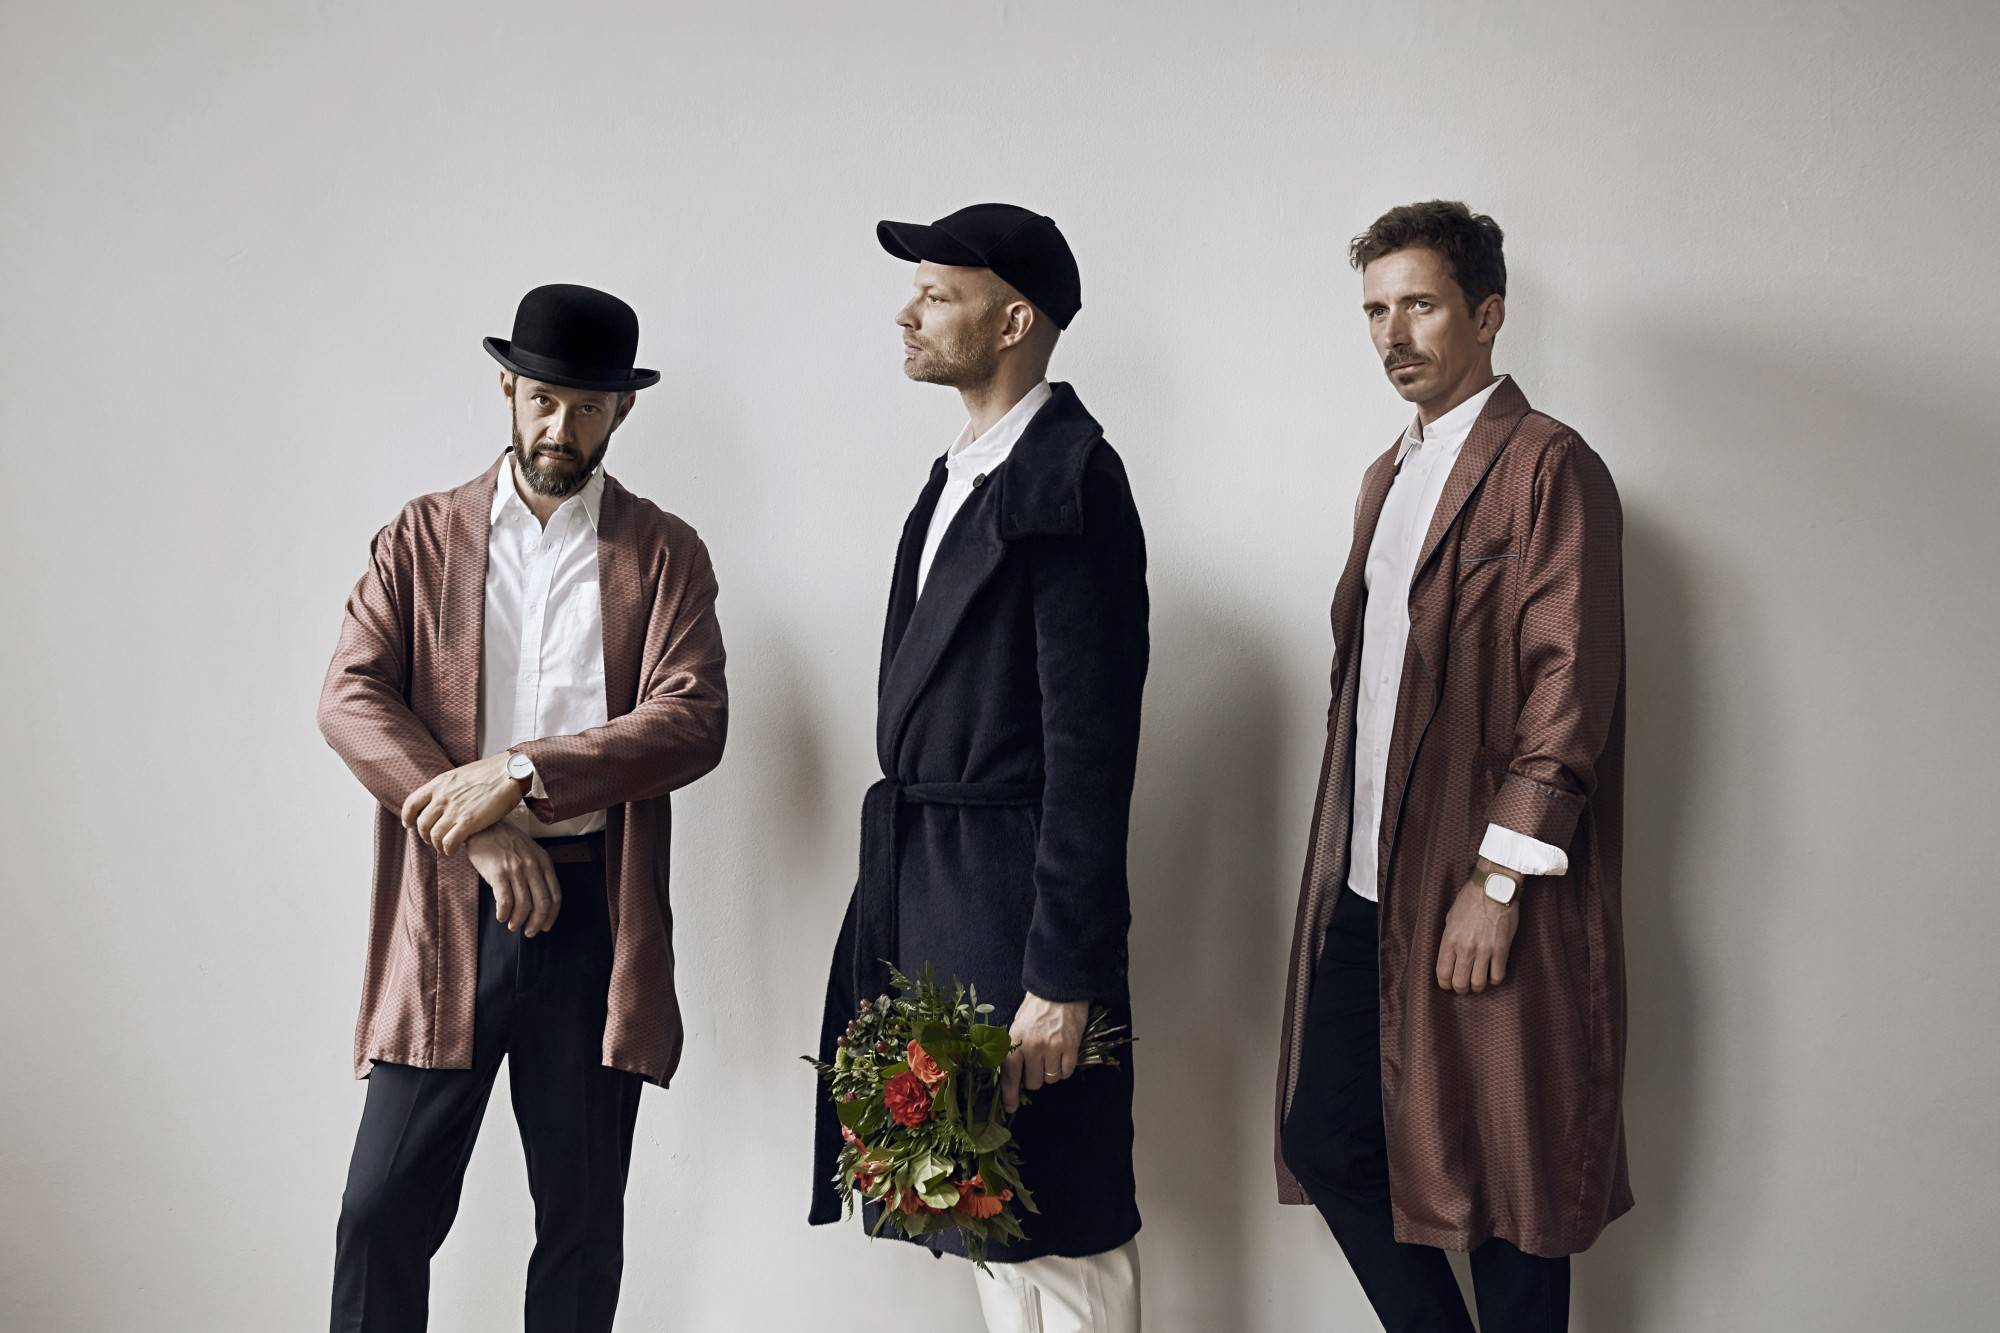 Animo regresa a Madrid, por Carnaval, con Whomadewho en directo WhoMadeWho Press Pic